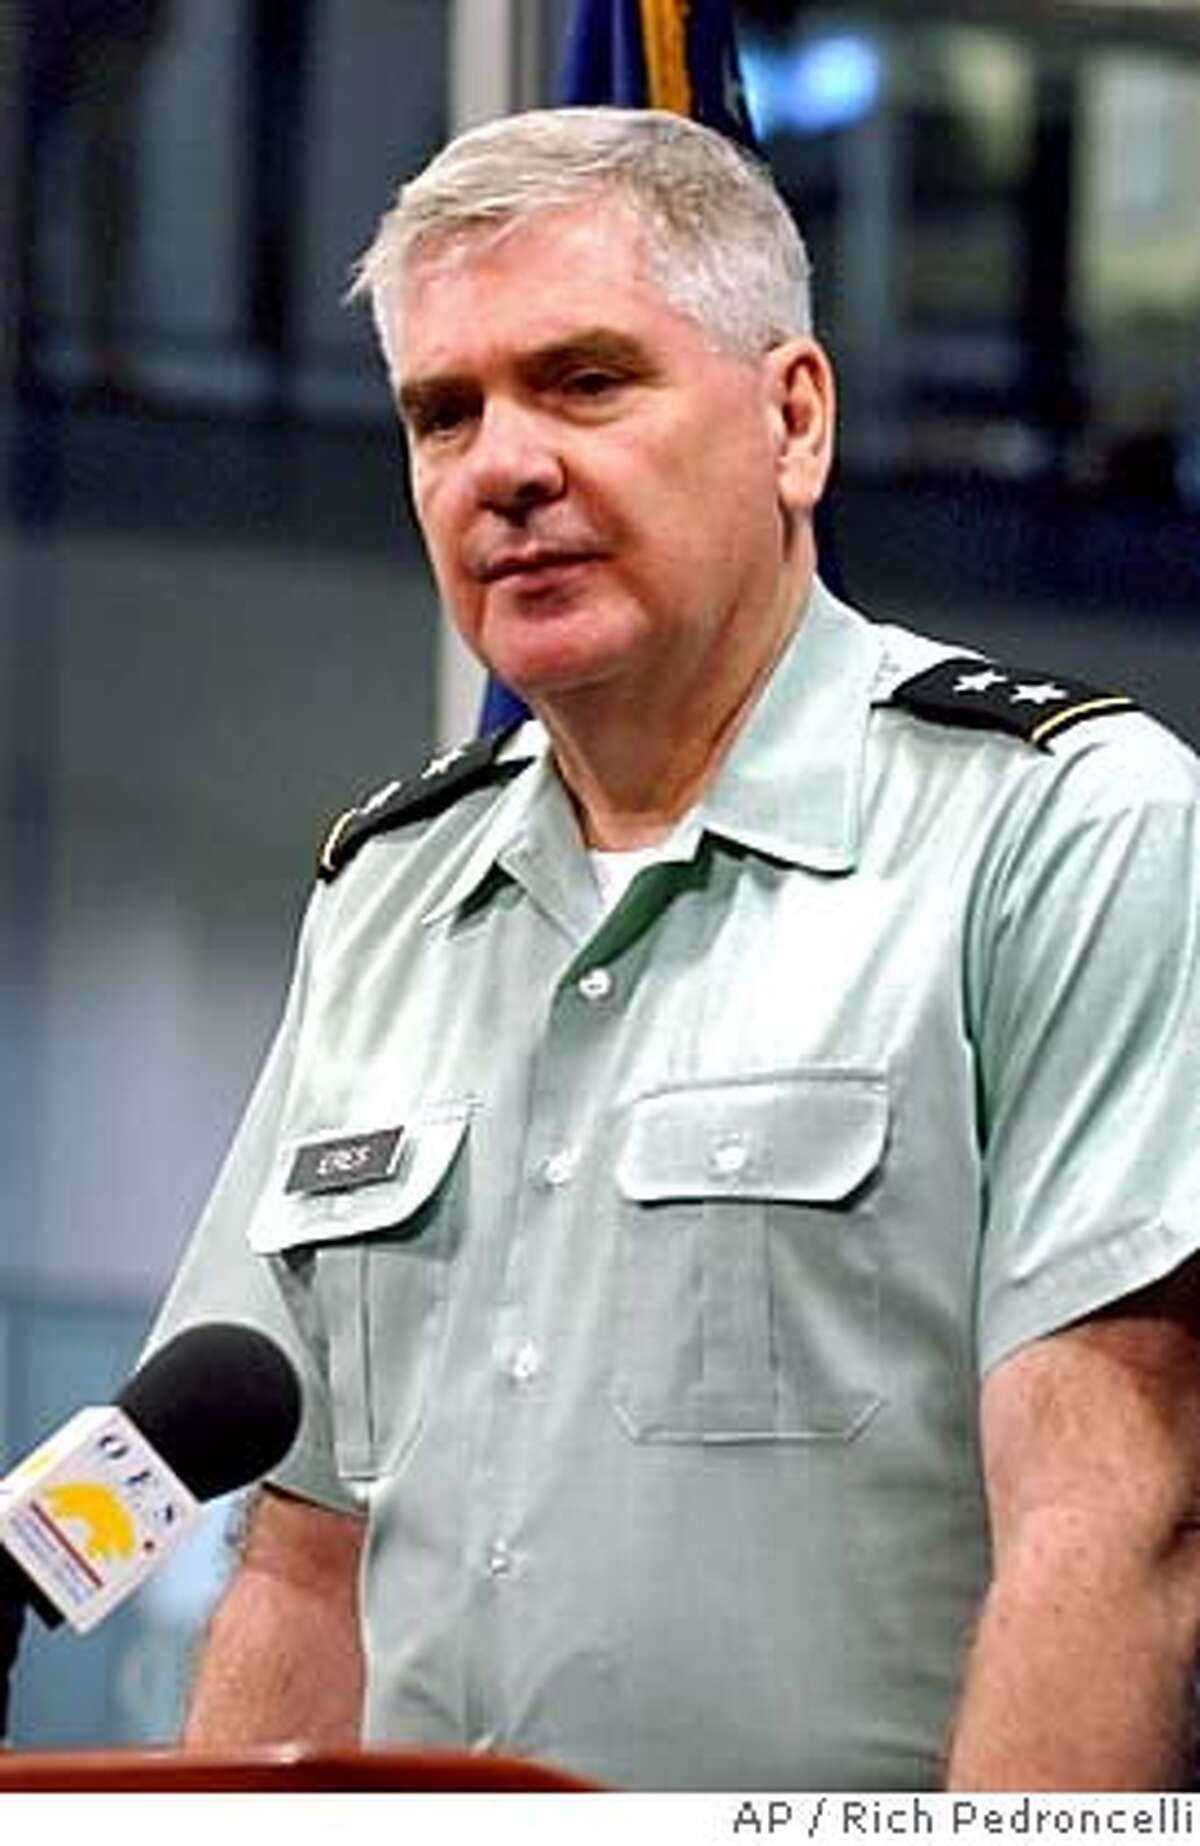 **FILE** Maj. Gen. Thomas Eres, commanding officer of the California National Guard, is shown at the California Office of Emergency Services Command Center, in Rancho Cordova, Calif. in this Aug. 6, 2004 file photo. Eres resigned his position late Monday amid allegations that he failed to meet Pentagon combat requirements and may have improperly offered military services to a political group. Eres, 61, seen in this was appointed to the position by Gov. Arnold Schwarzenegger in March of 2004.(AP Photo/Rich Pedroncelli, file) AUGUST 6 2004 FILE PHOTO